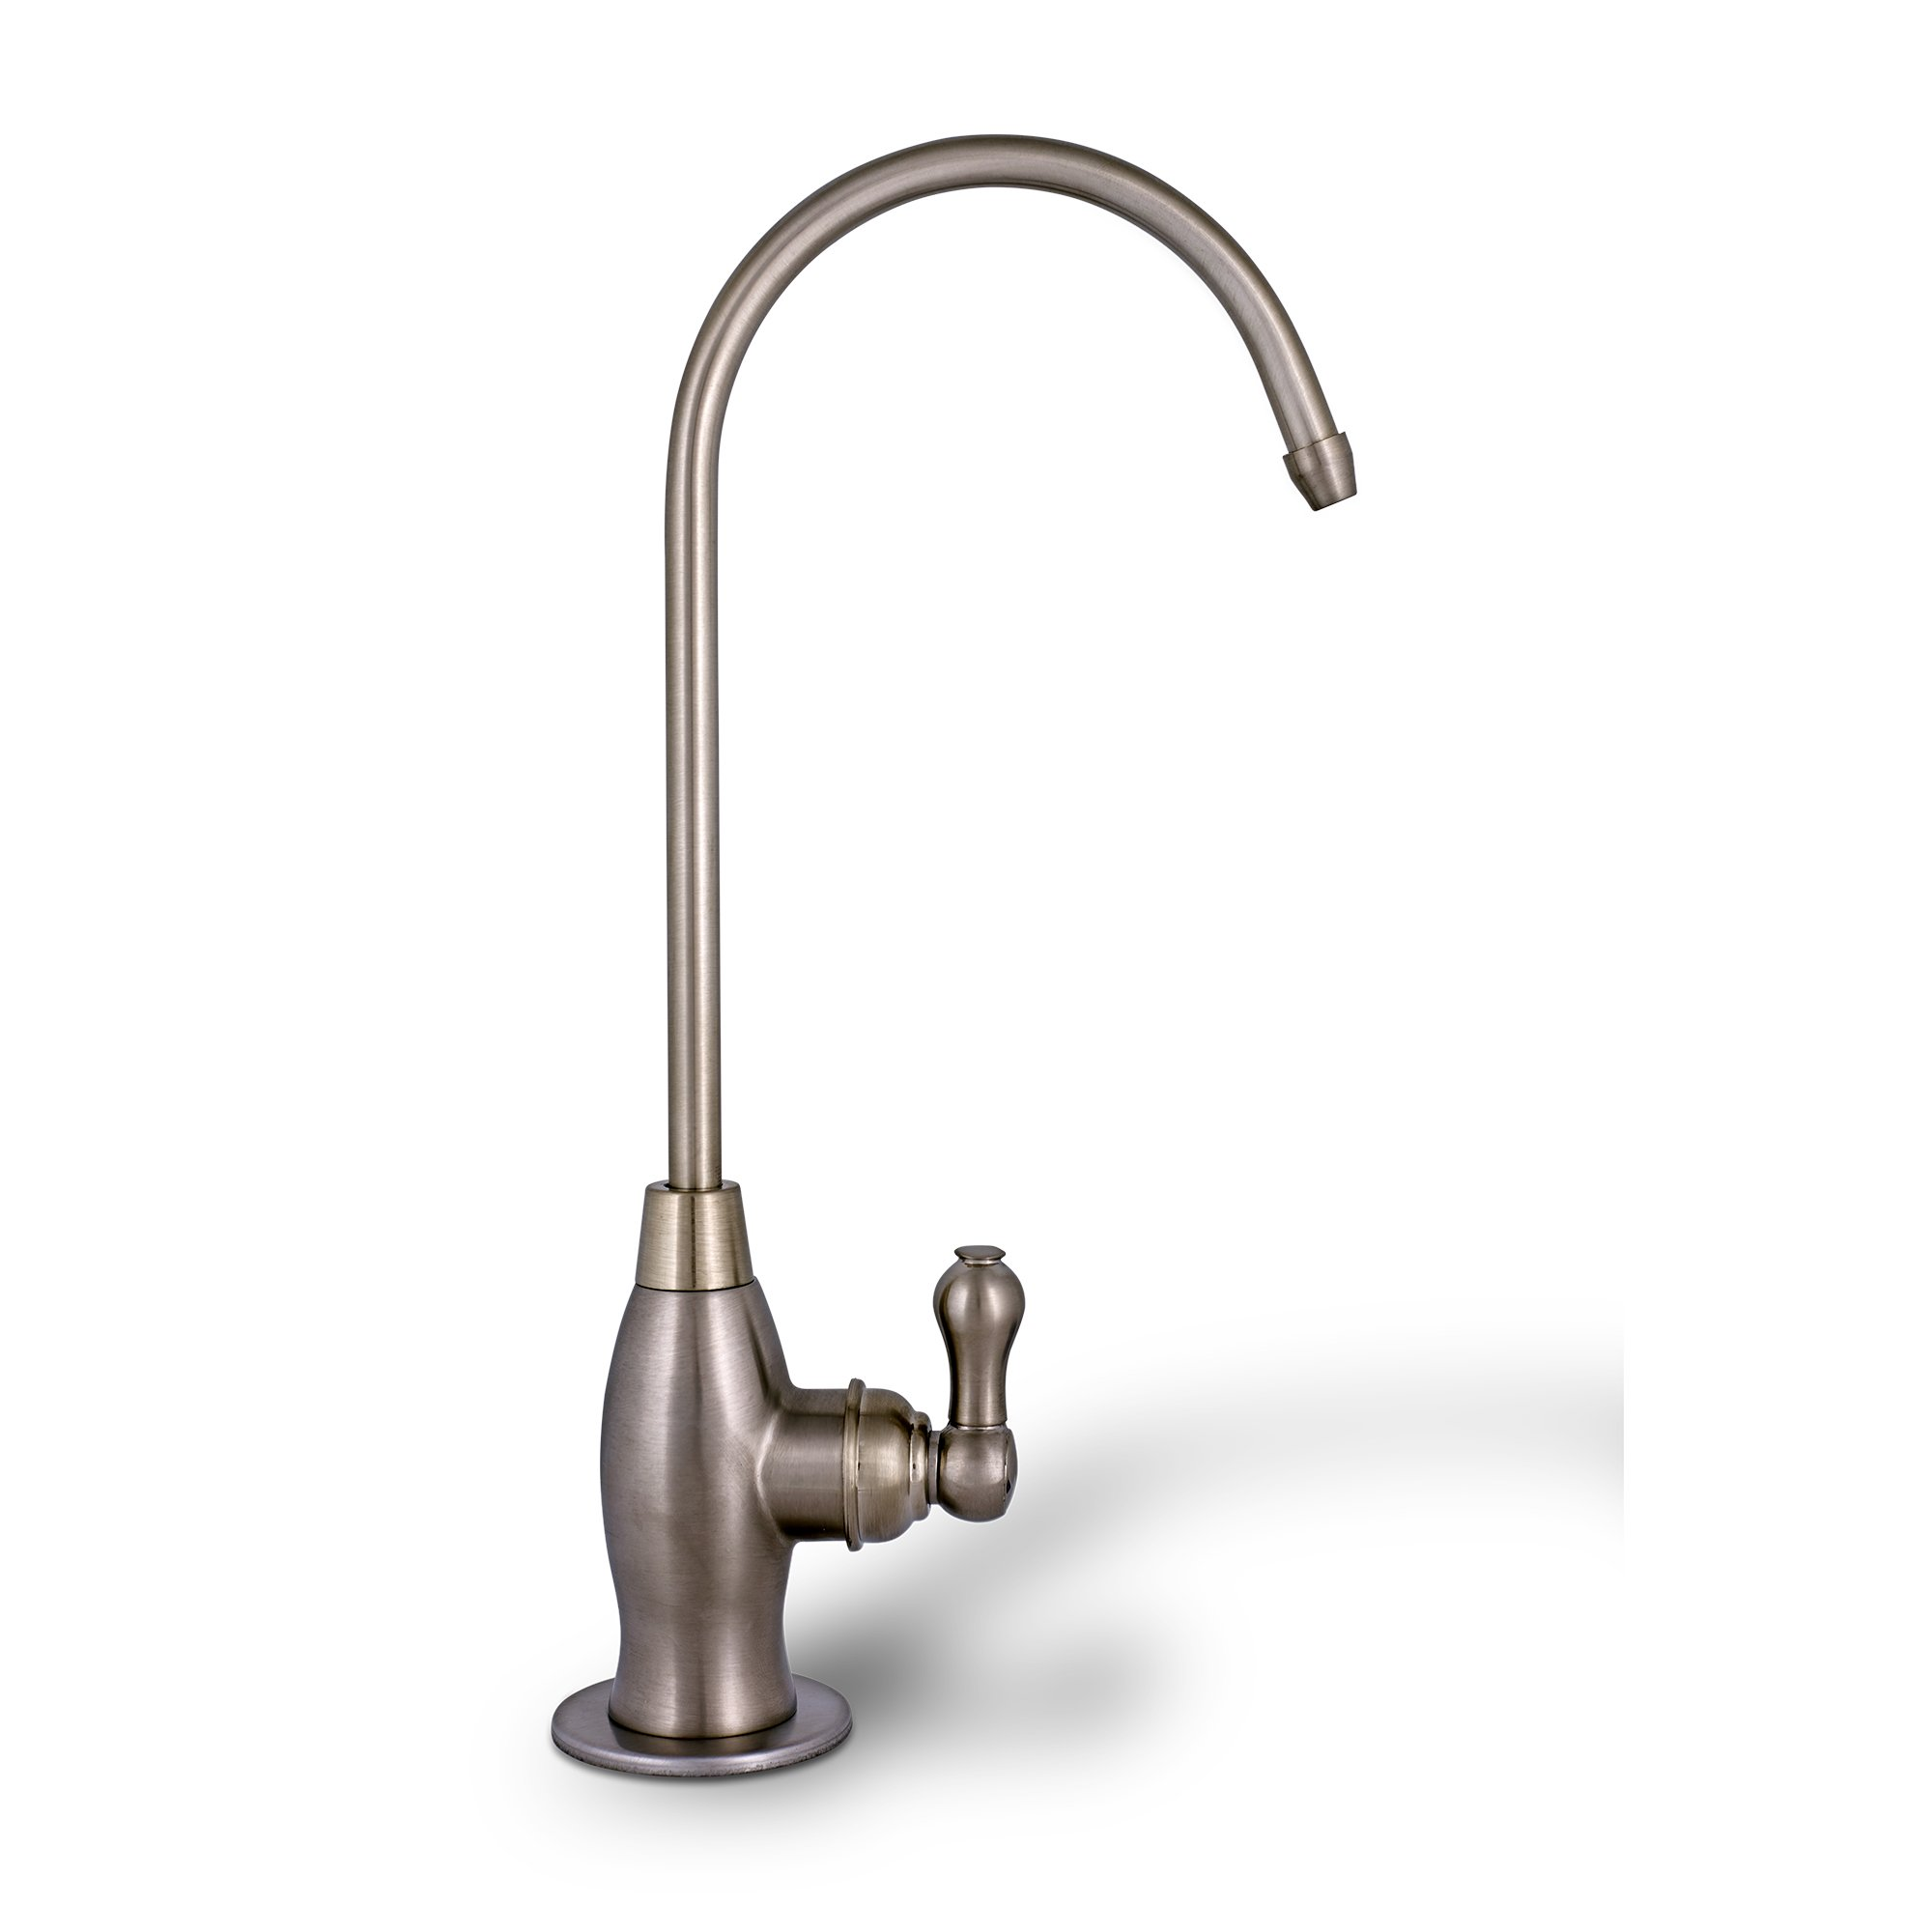 Goose-neck High Spout Cold Water Kitchen Drinking Faucet Dispenser Brushed Nickel